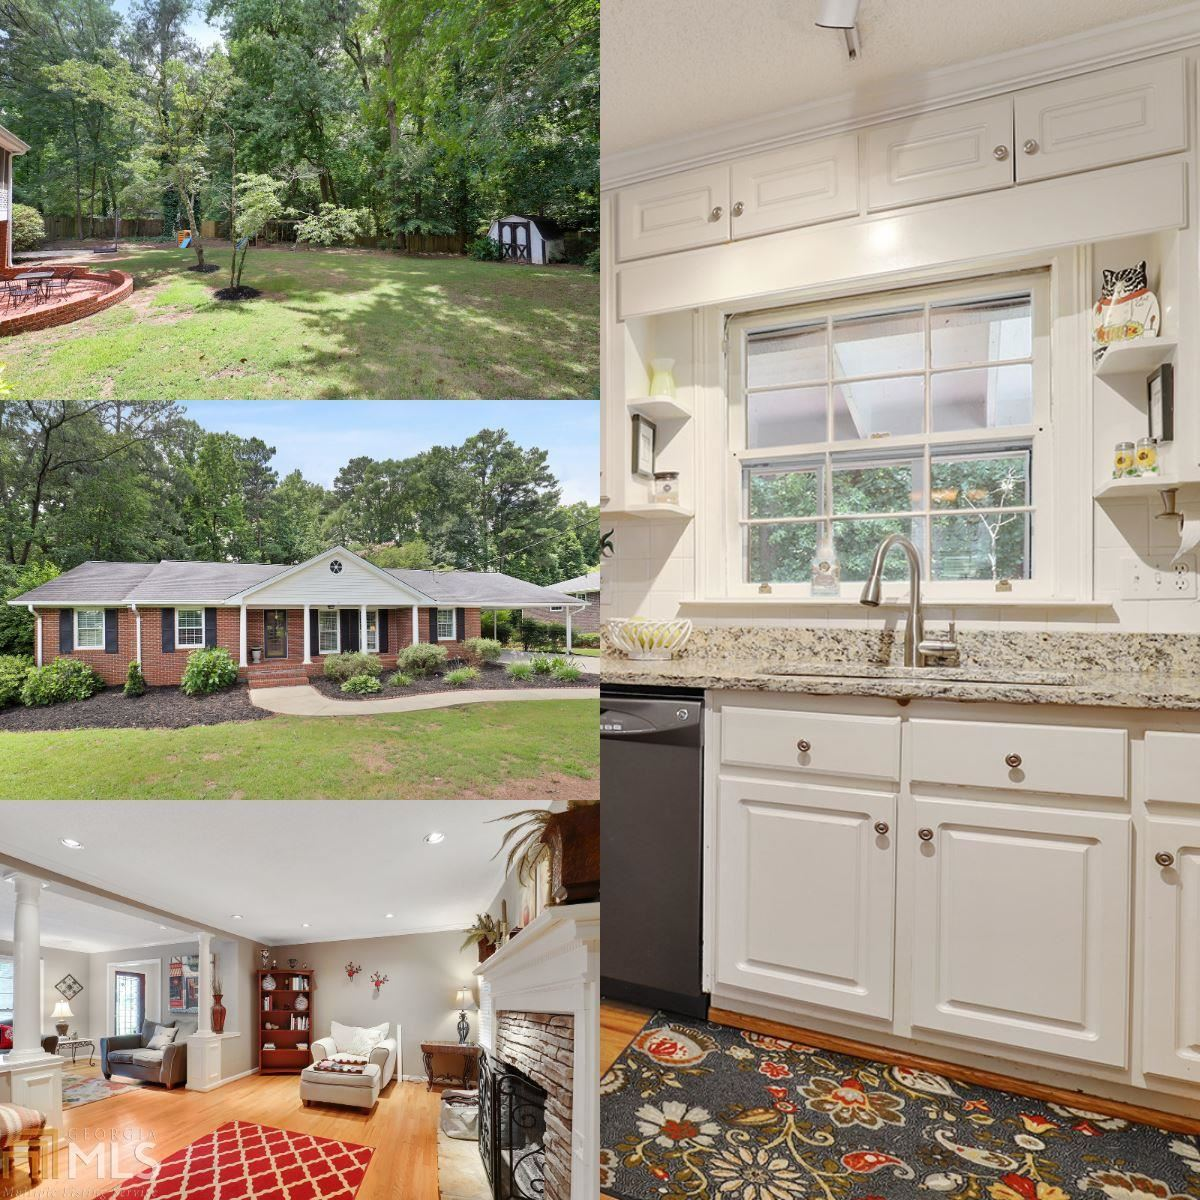 647 Counsel Dr, Marietta, GA 30068 - #: 8800587